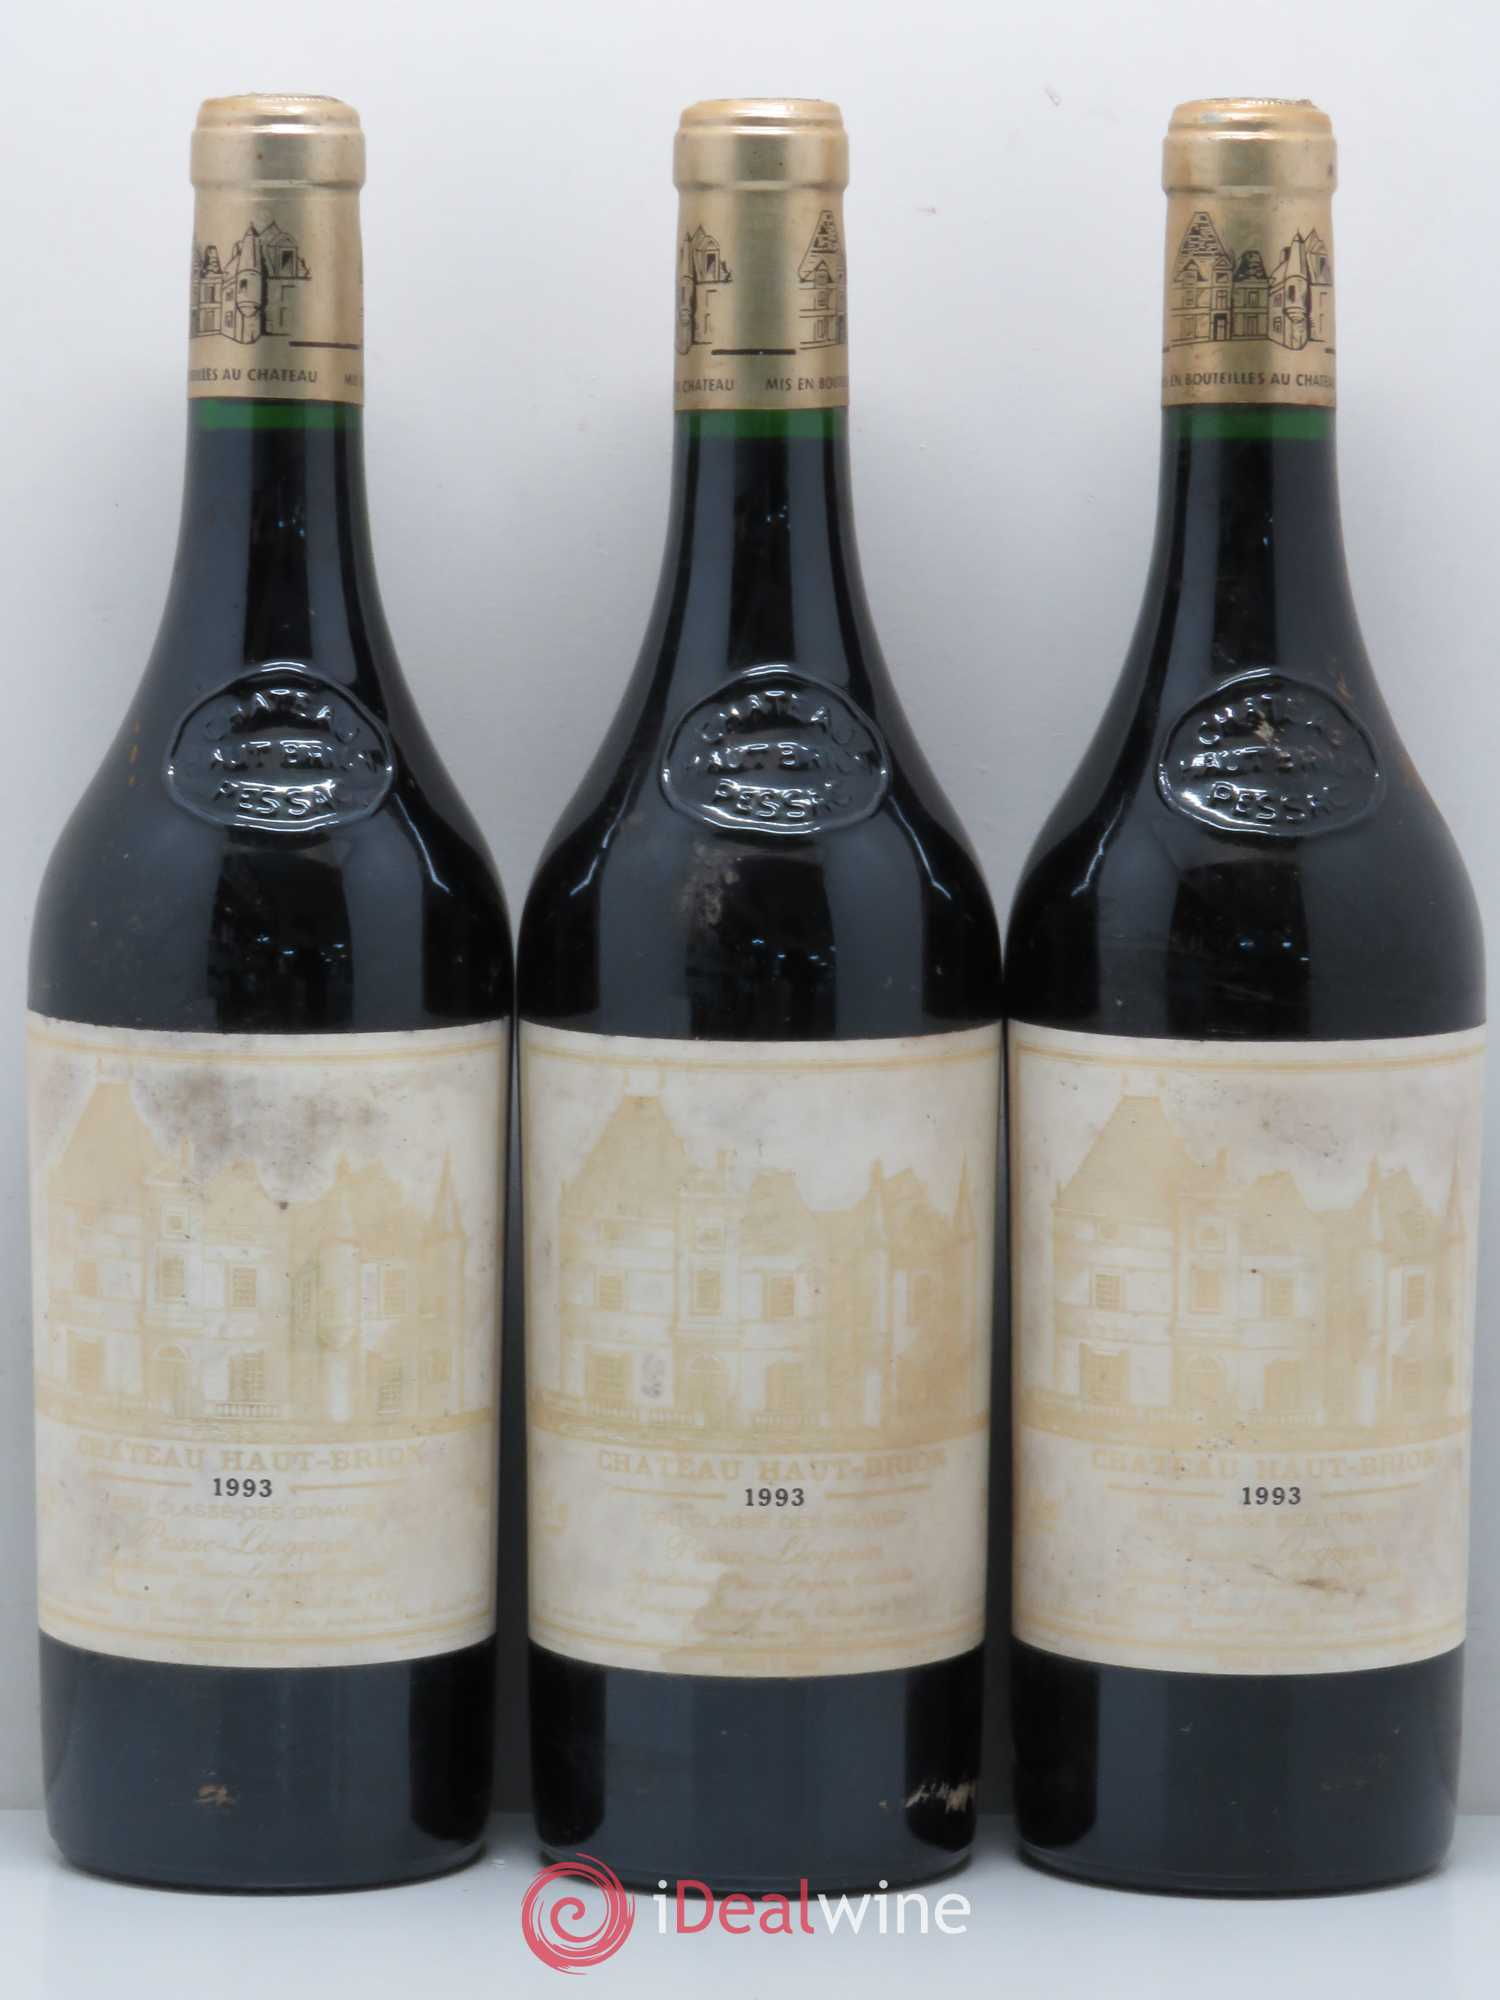 Château Haut Brion 1er Grand Cru Classé  1993 - Lot of 3 Bottles